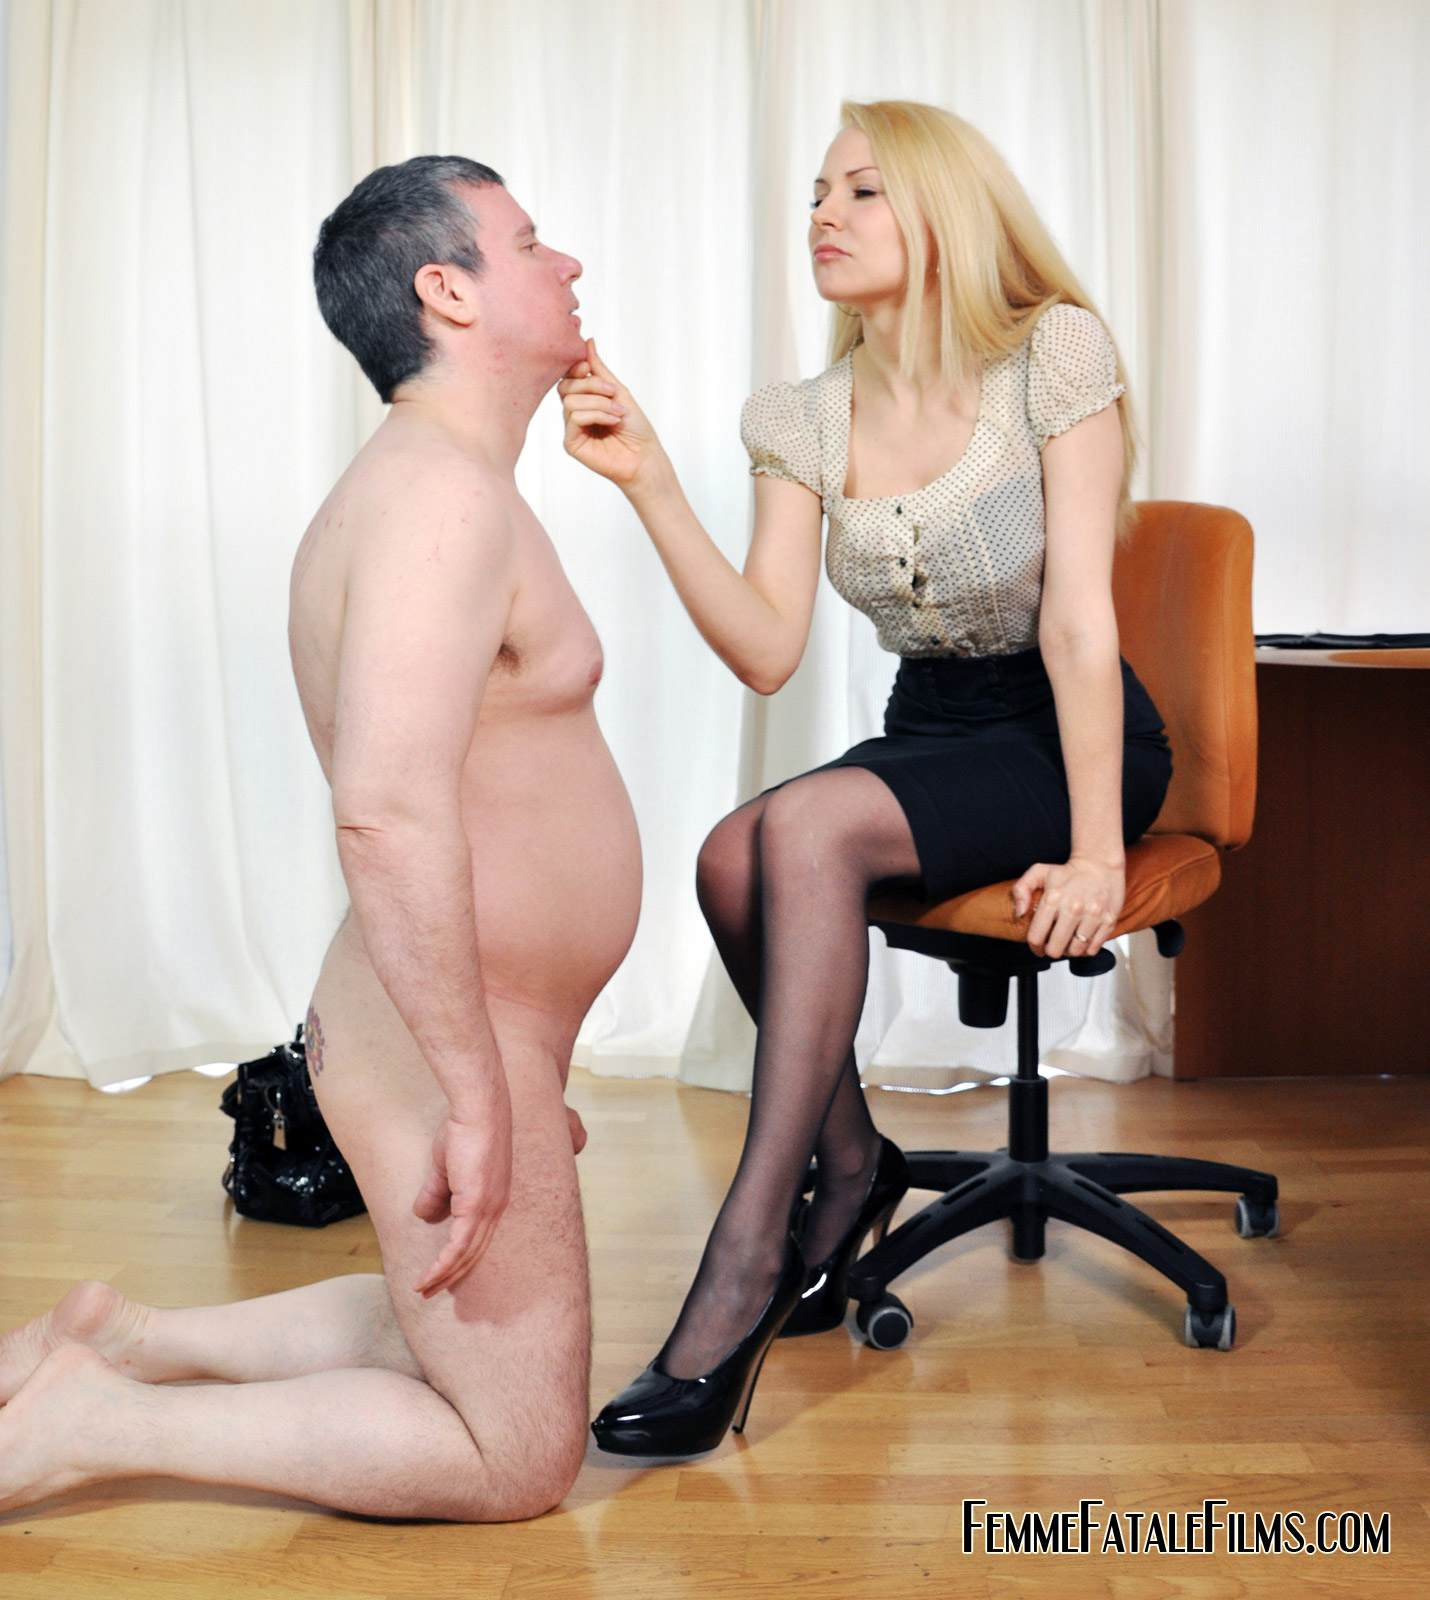 Picture #4 of Job interview ends up well for dominant secretary who spanks her future boss over the knee